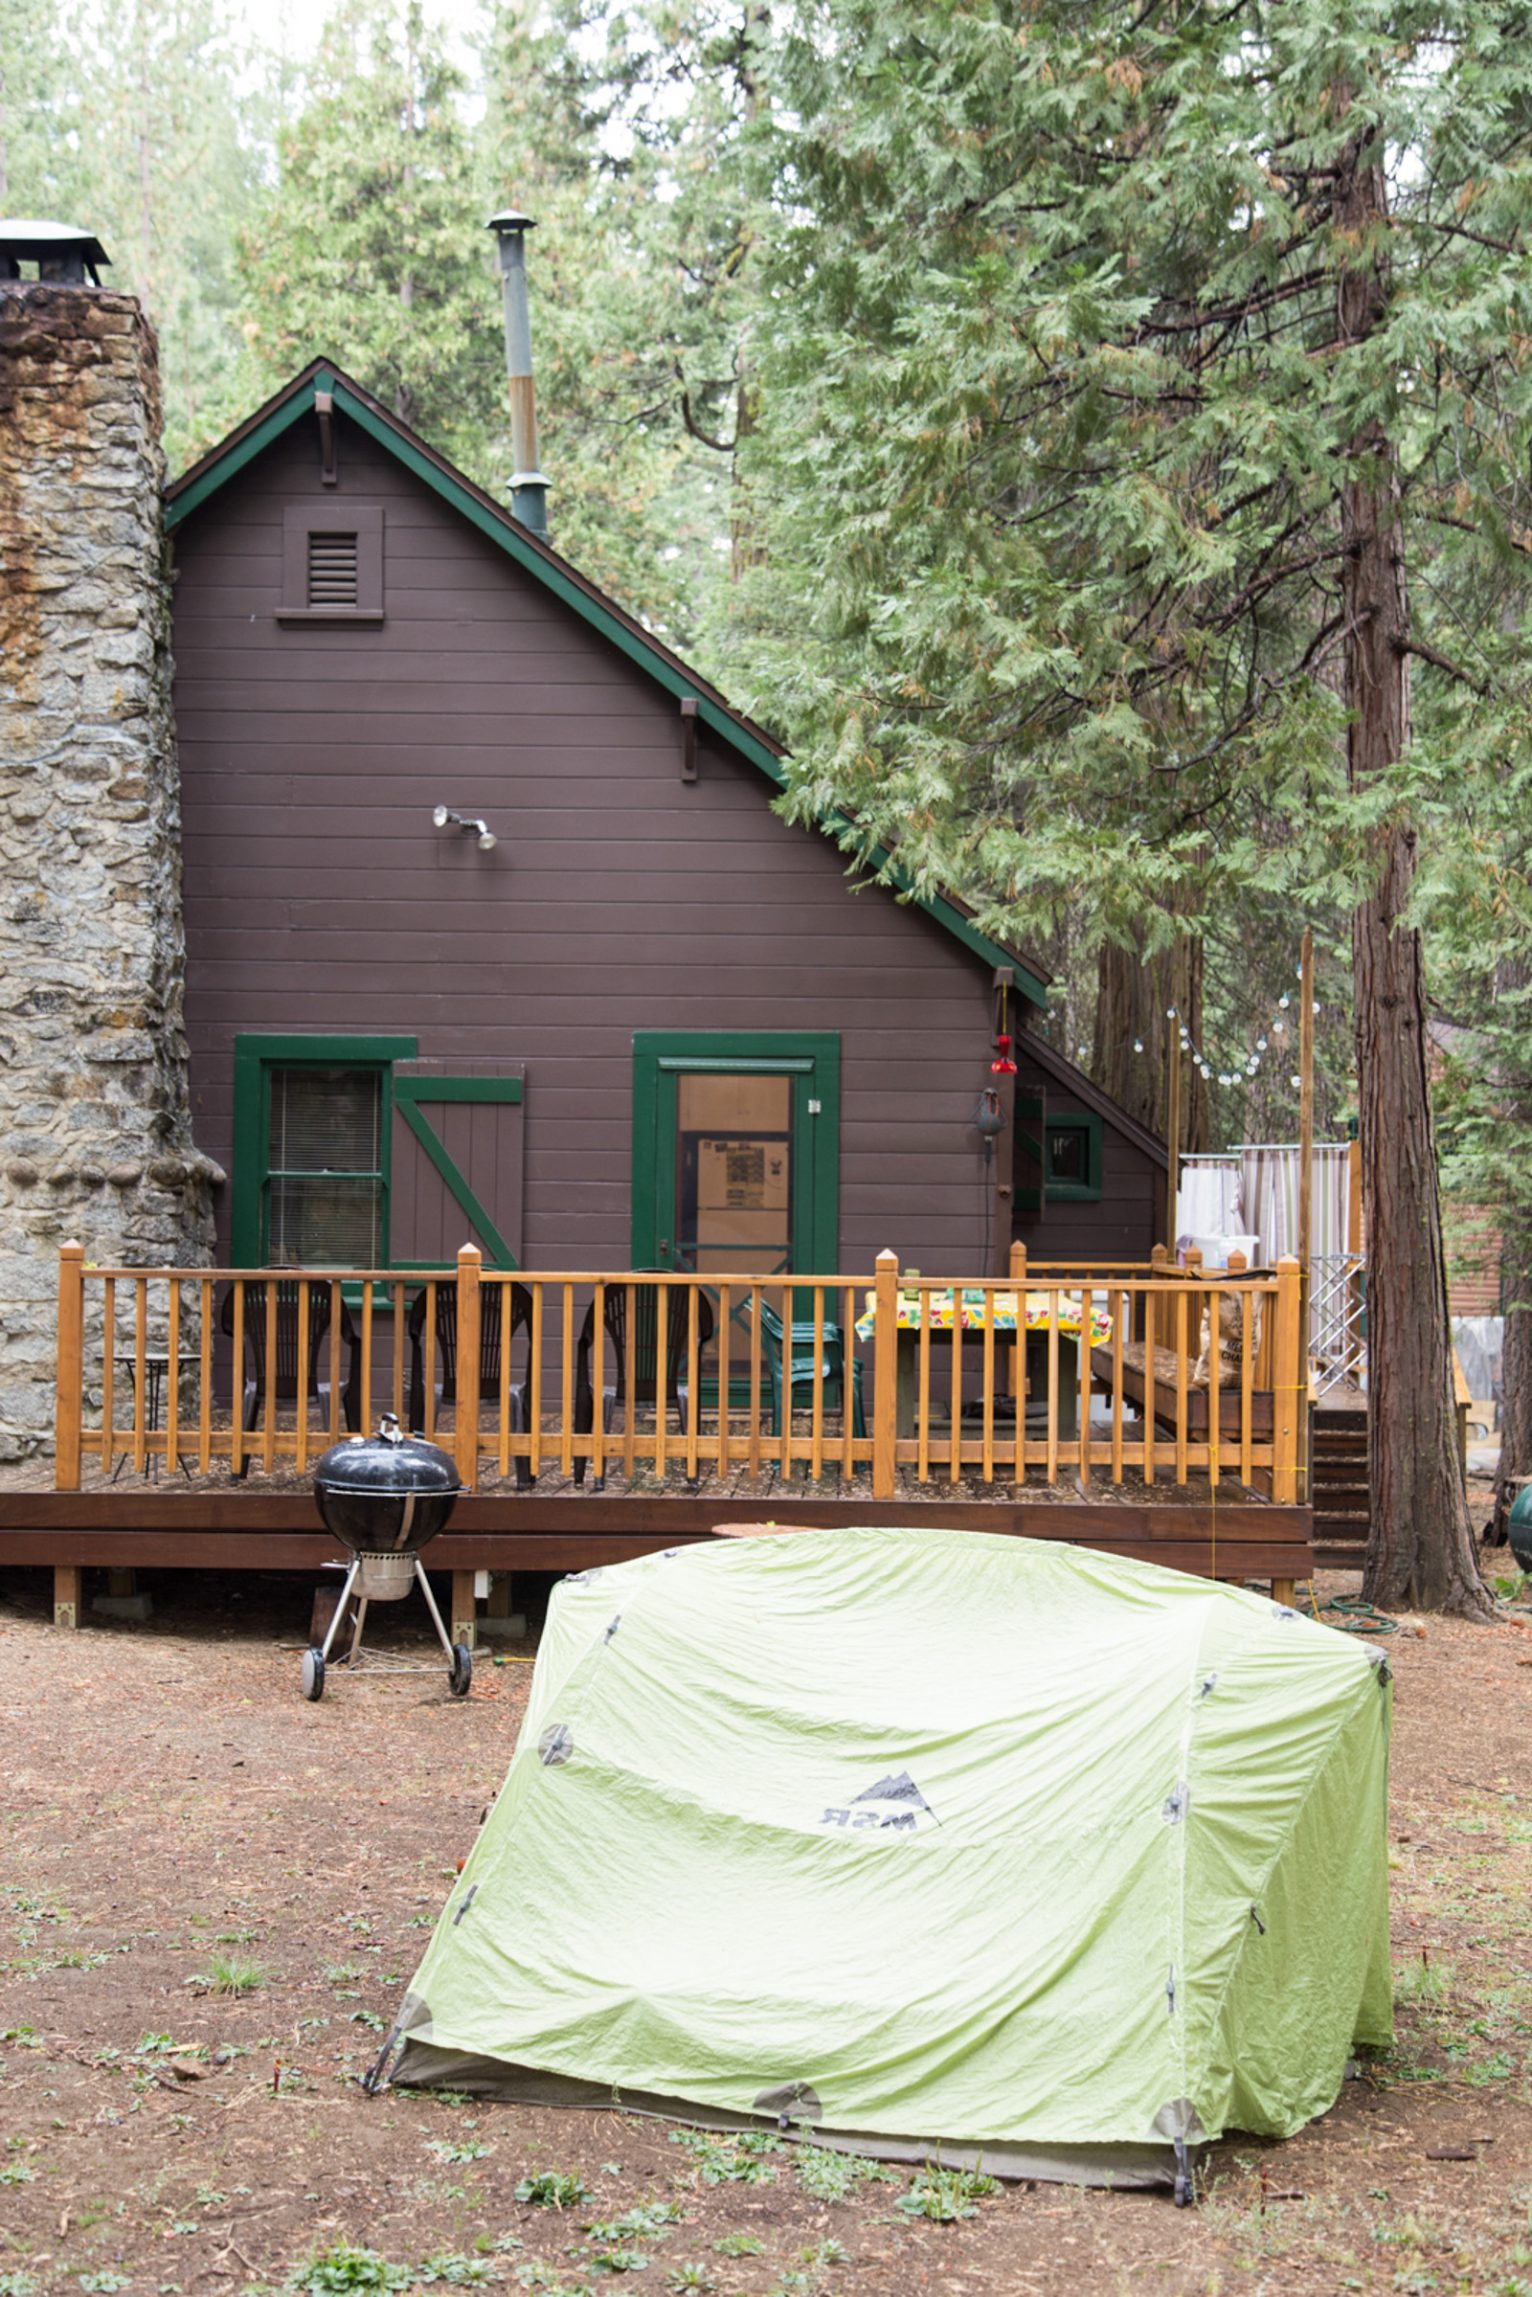 Meghan Phillips' family cabin with Grady Fike's tent pitched out front